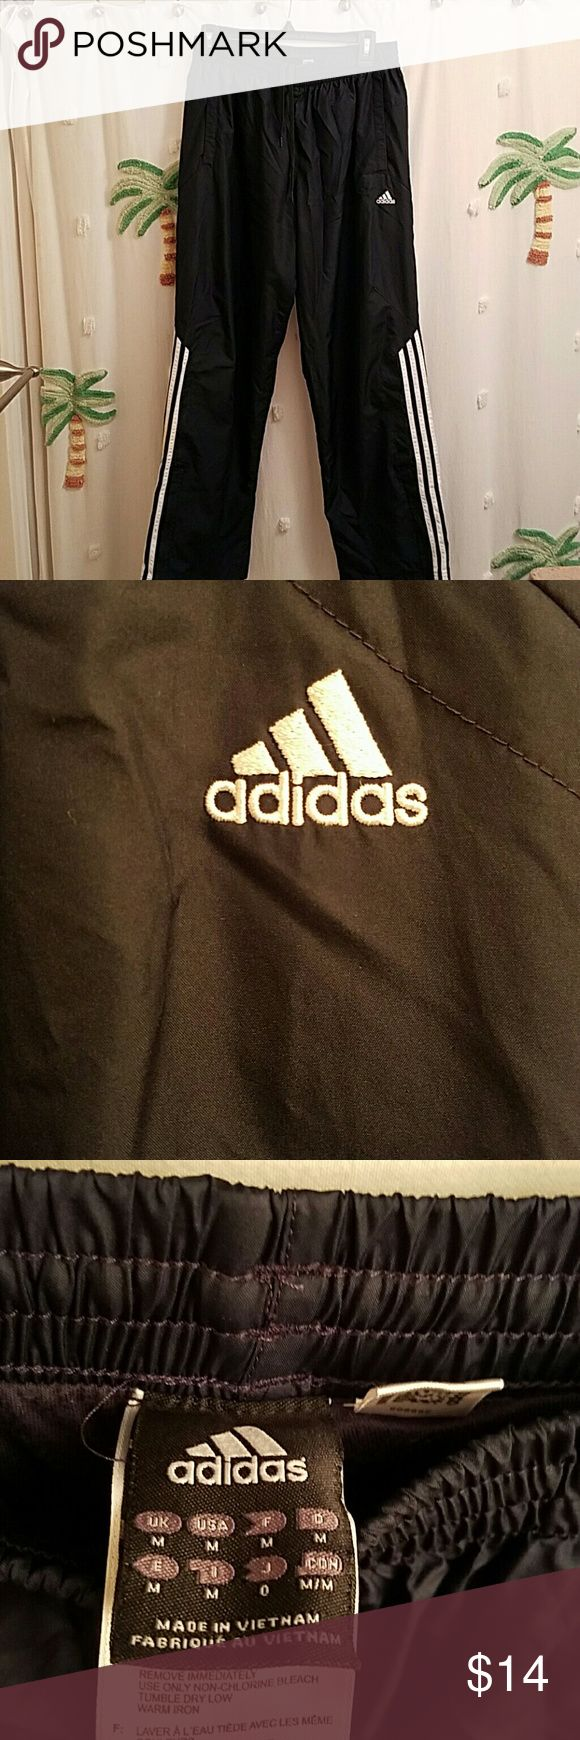 Adidas mens athletic pants size meduim Adidas dark blue athletic mens pants in EUC double front pocket with draw string front. adidas Pants Sweatpants & Joggers